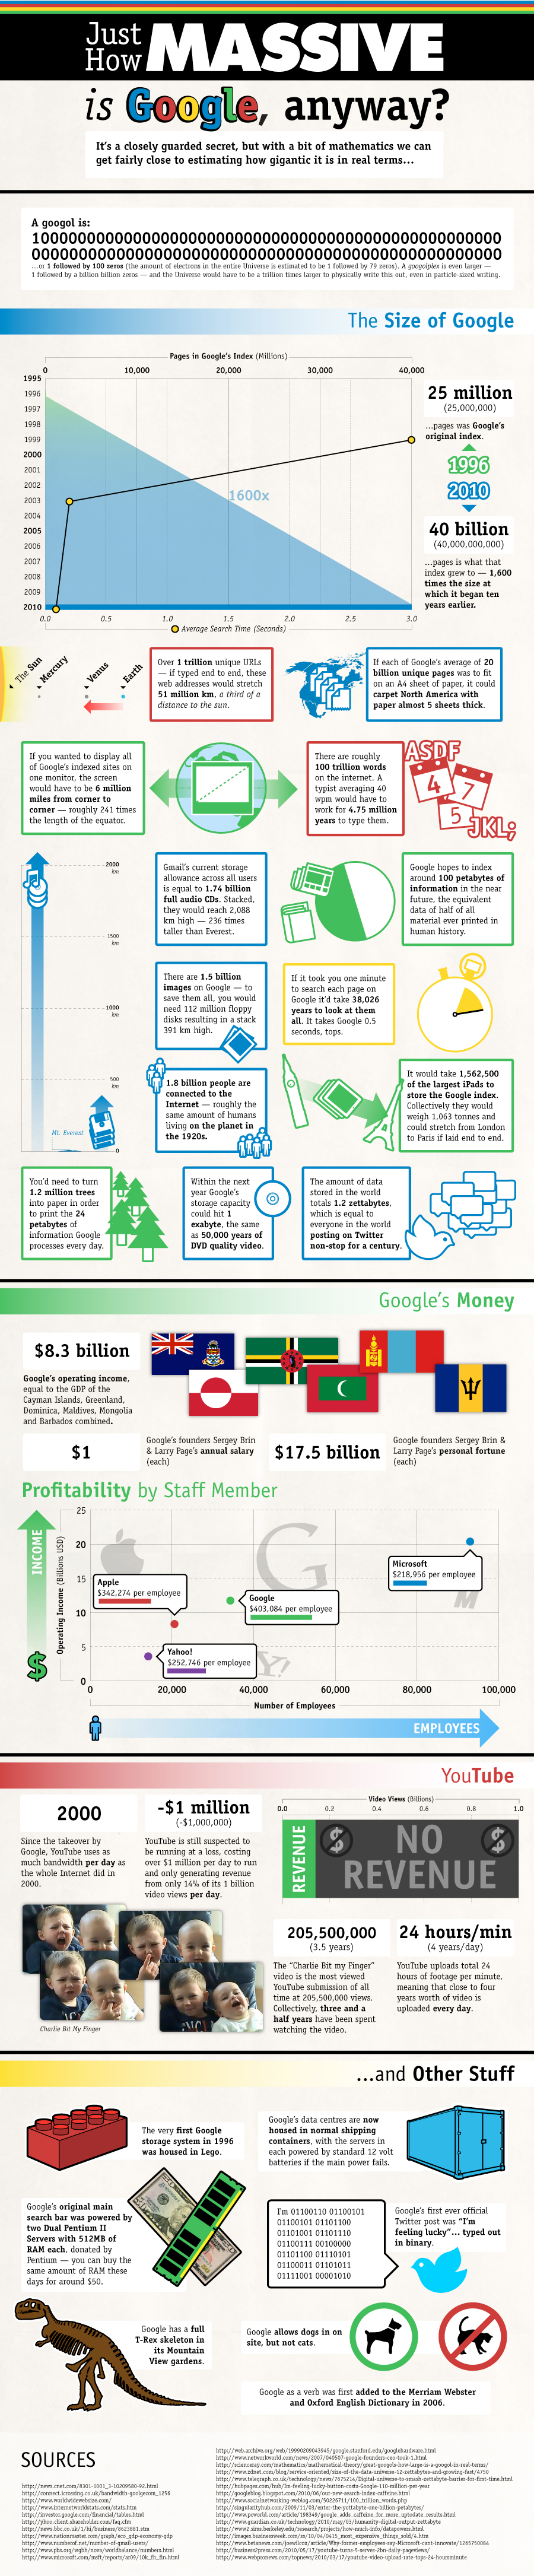 Google by the Numbers.